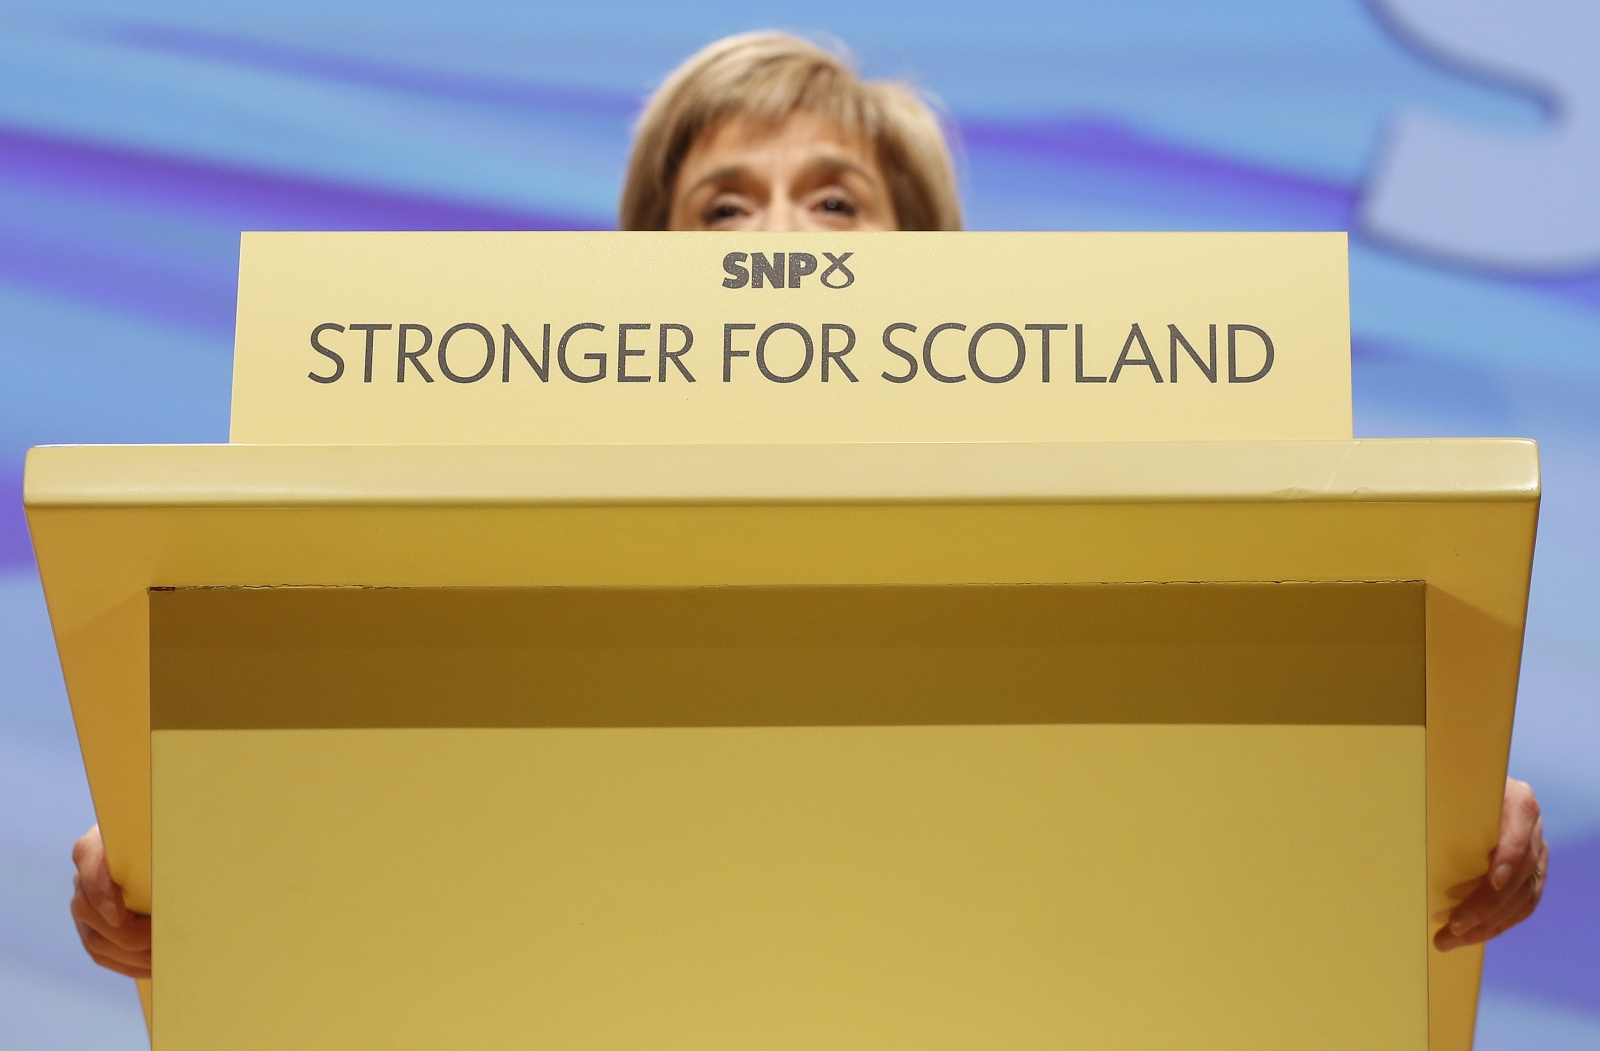 Nicola Sturgeon speaks after she was formally announced as the new Scottish National Party (SNP) leader at the party conference in Perth, Scotland November 14, 2014